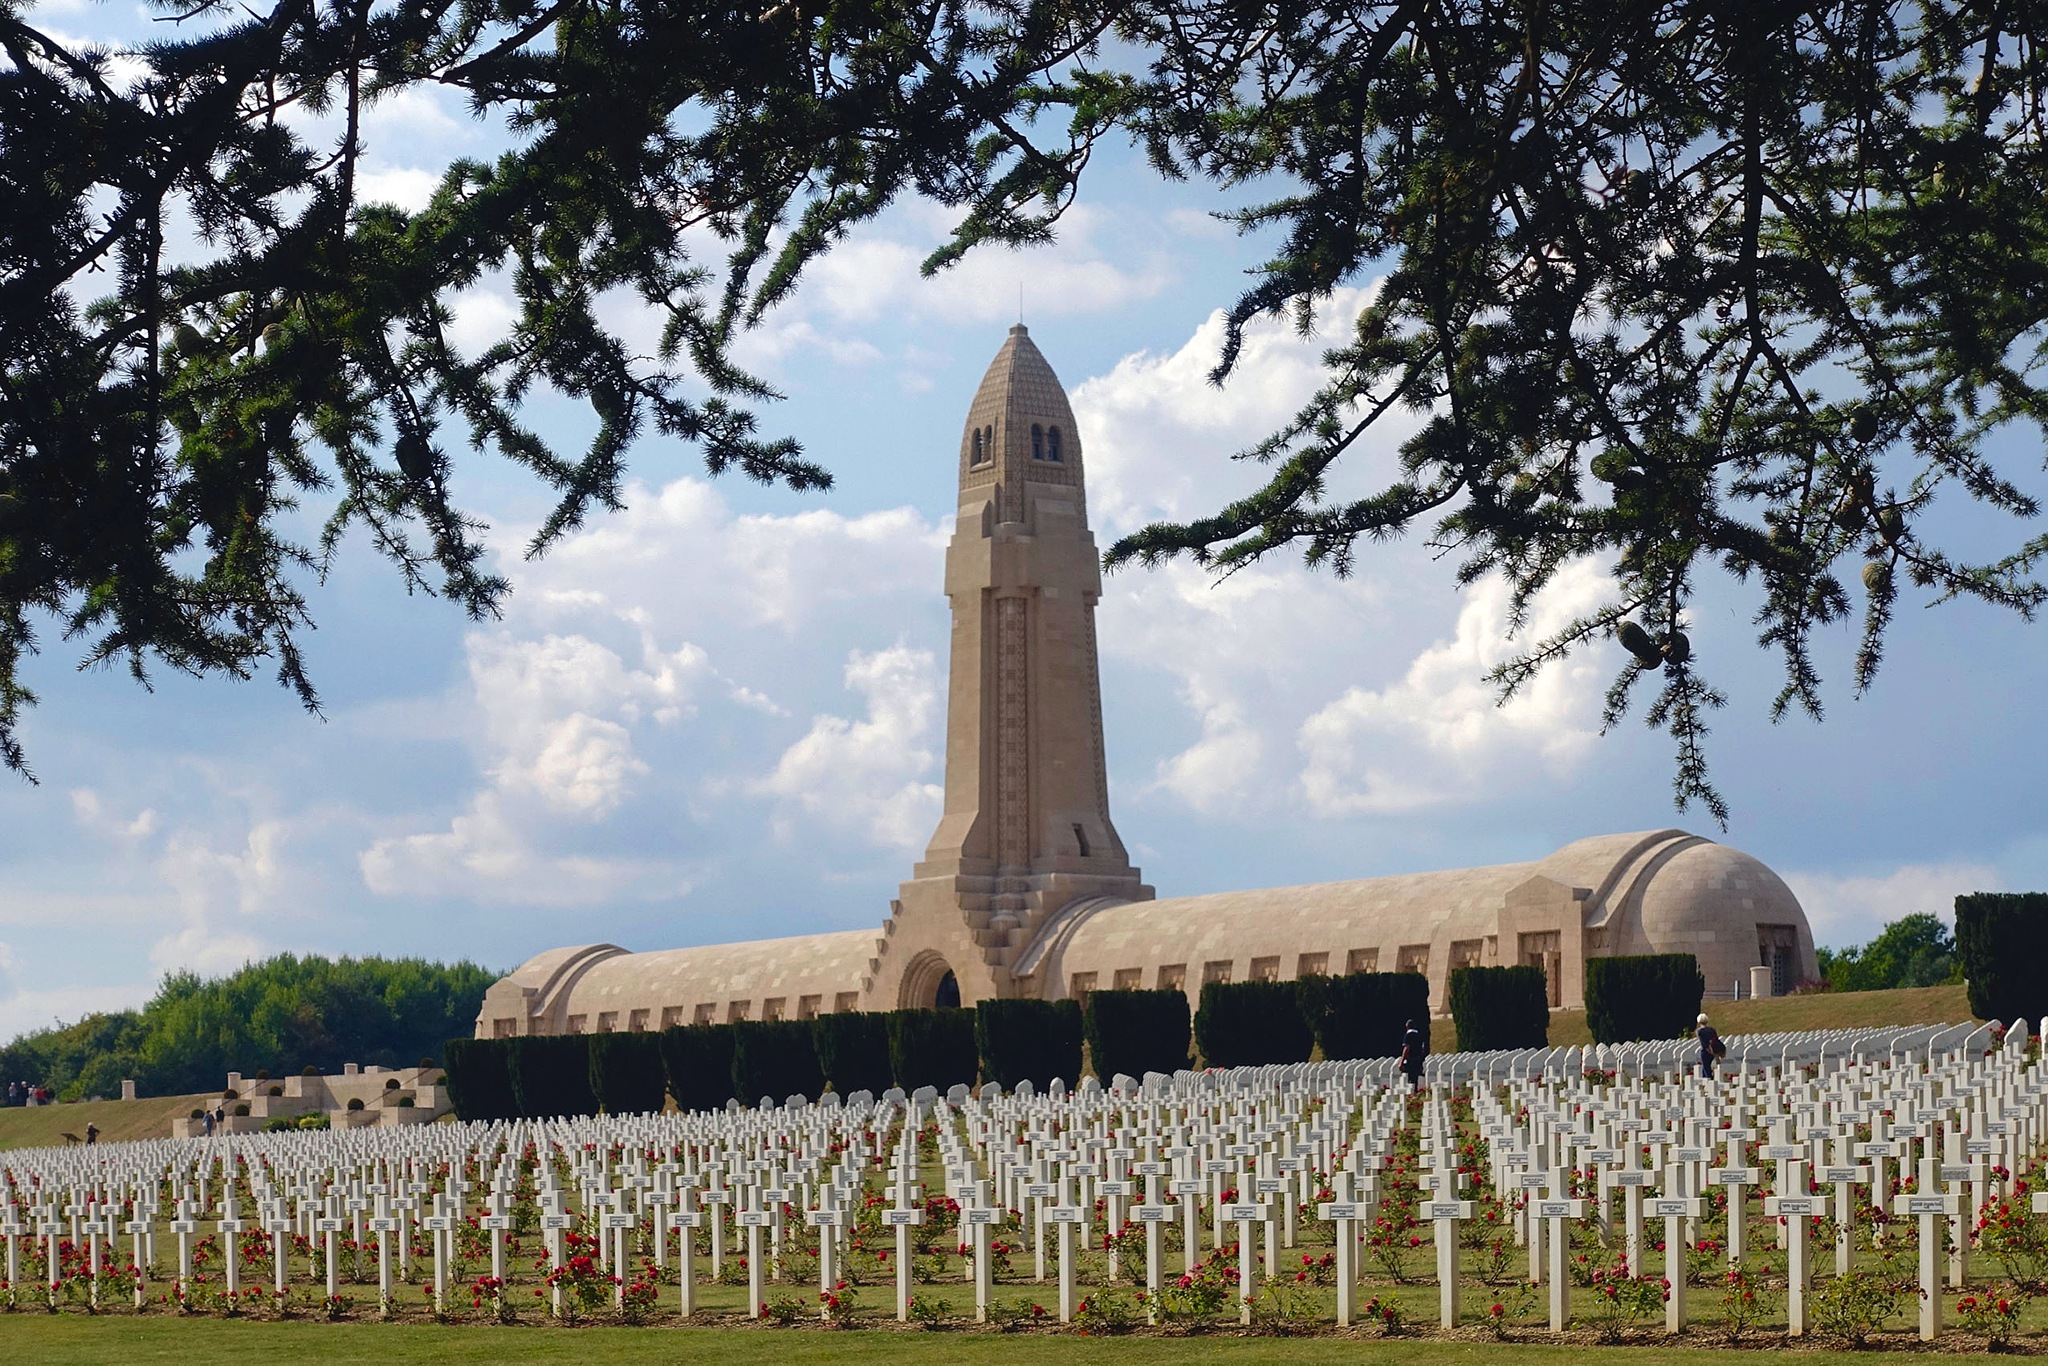 The National Gravesite at Verdun, France. by Erwin Widmer